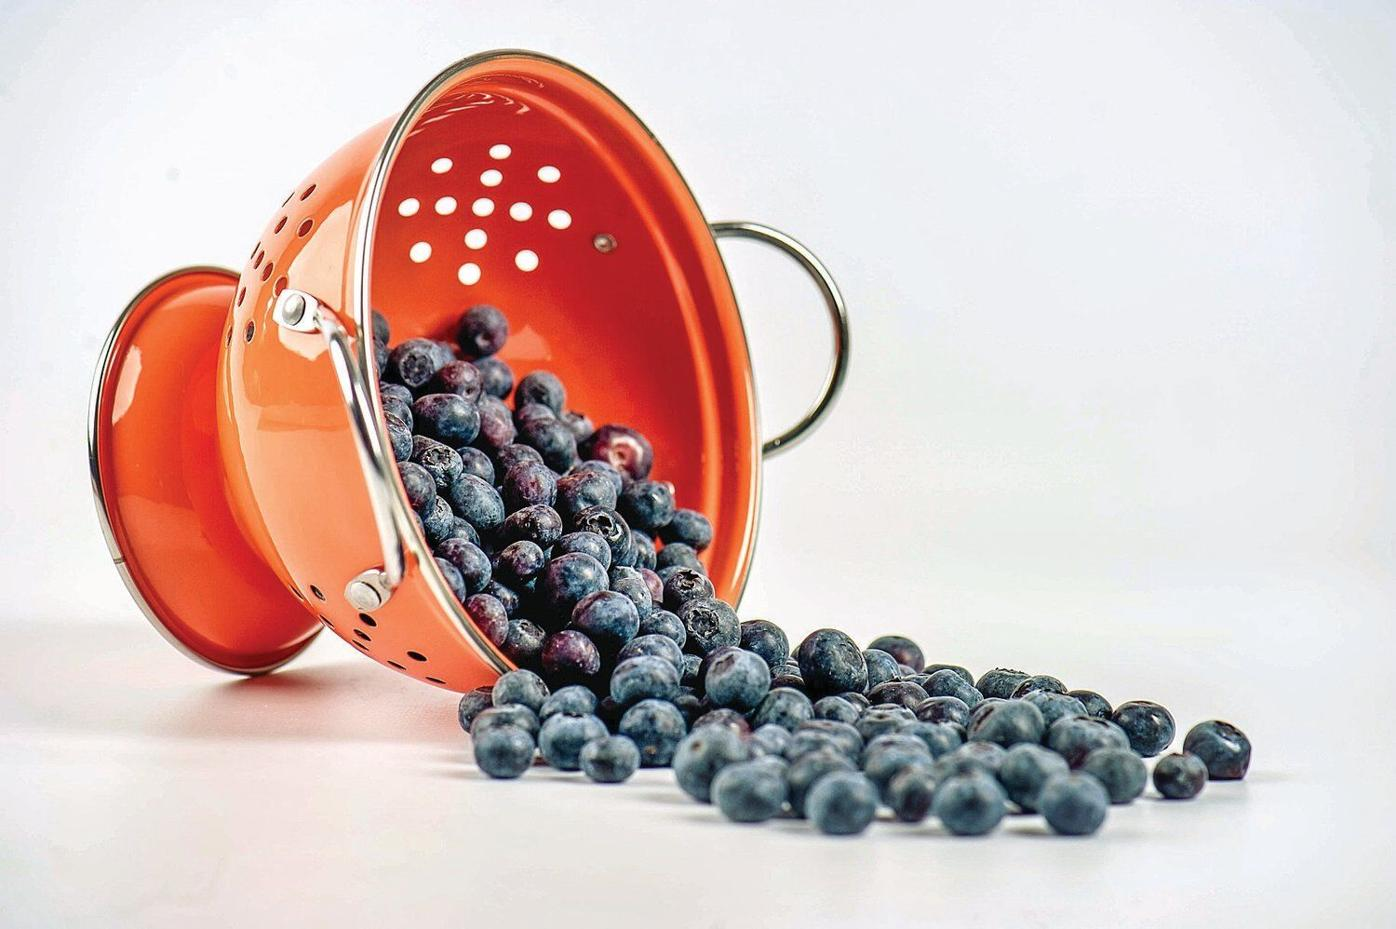 So, you picked 12 pounds of blueberries ... now what?